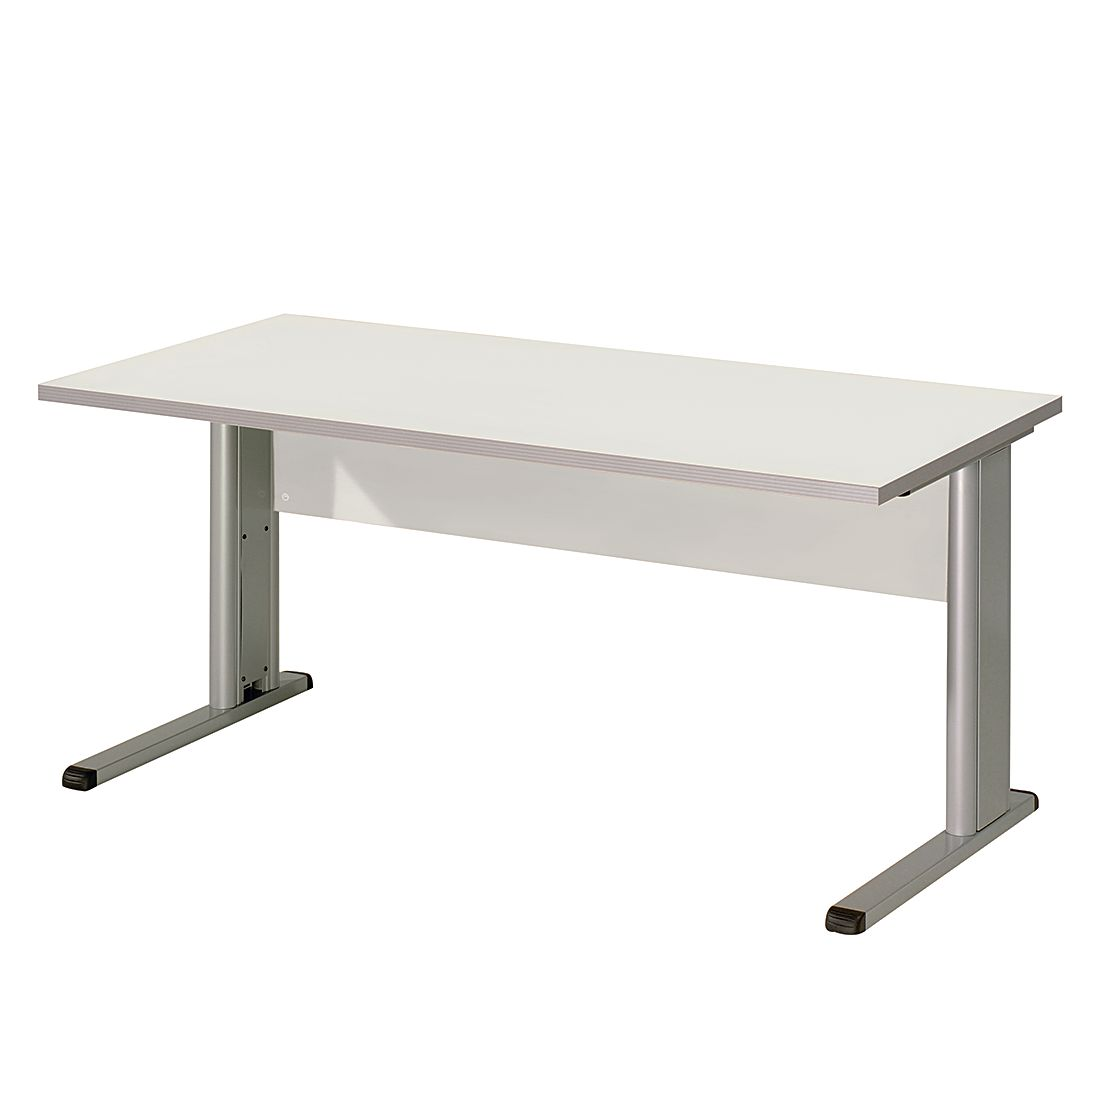 Table de bureau Kirk IV - Gris clair - Plateau de table : 80 x 80 cm, Wellemöbel